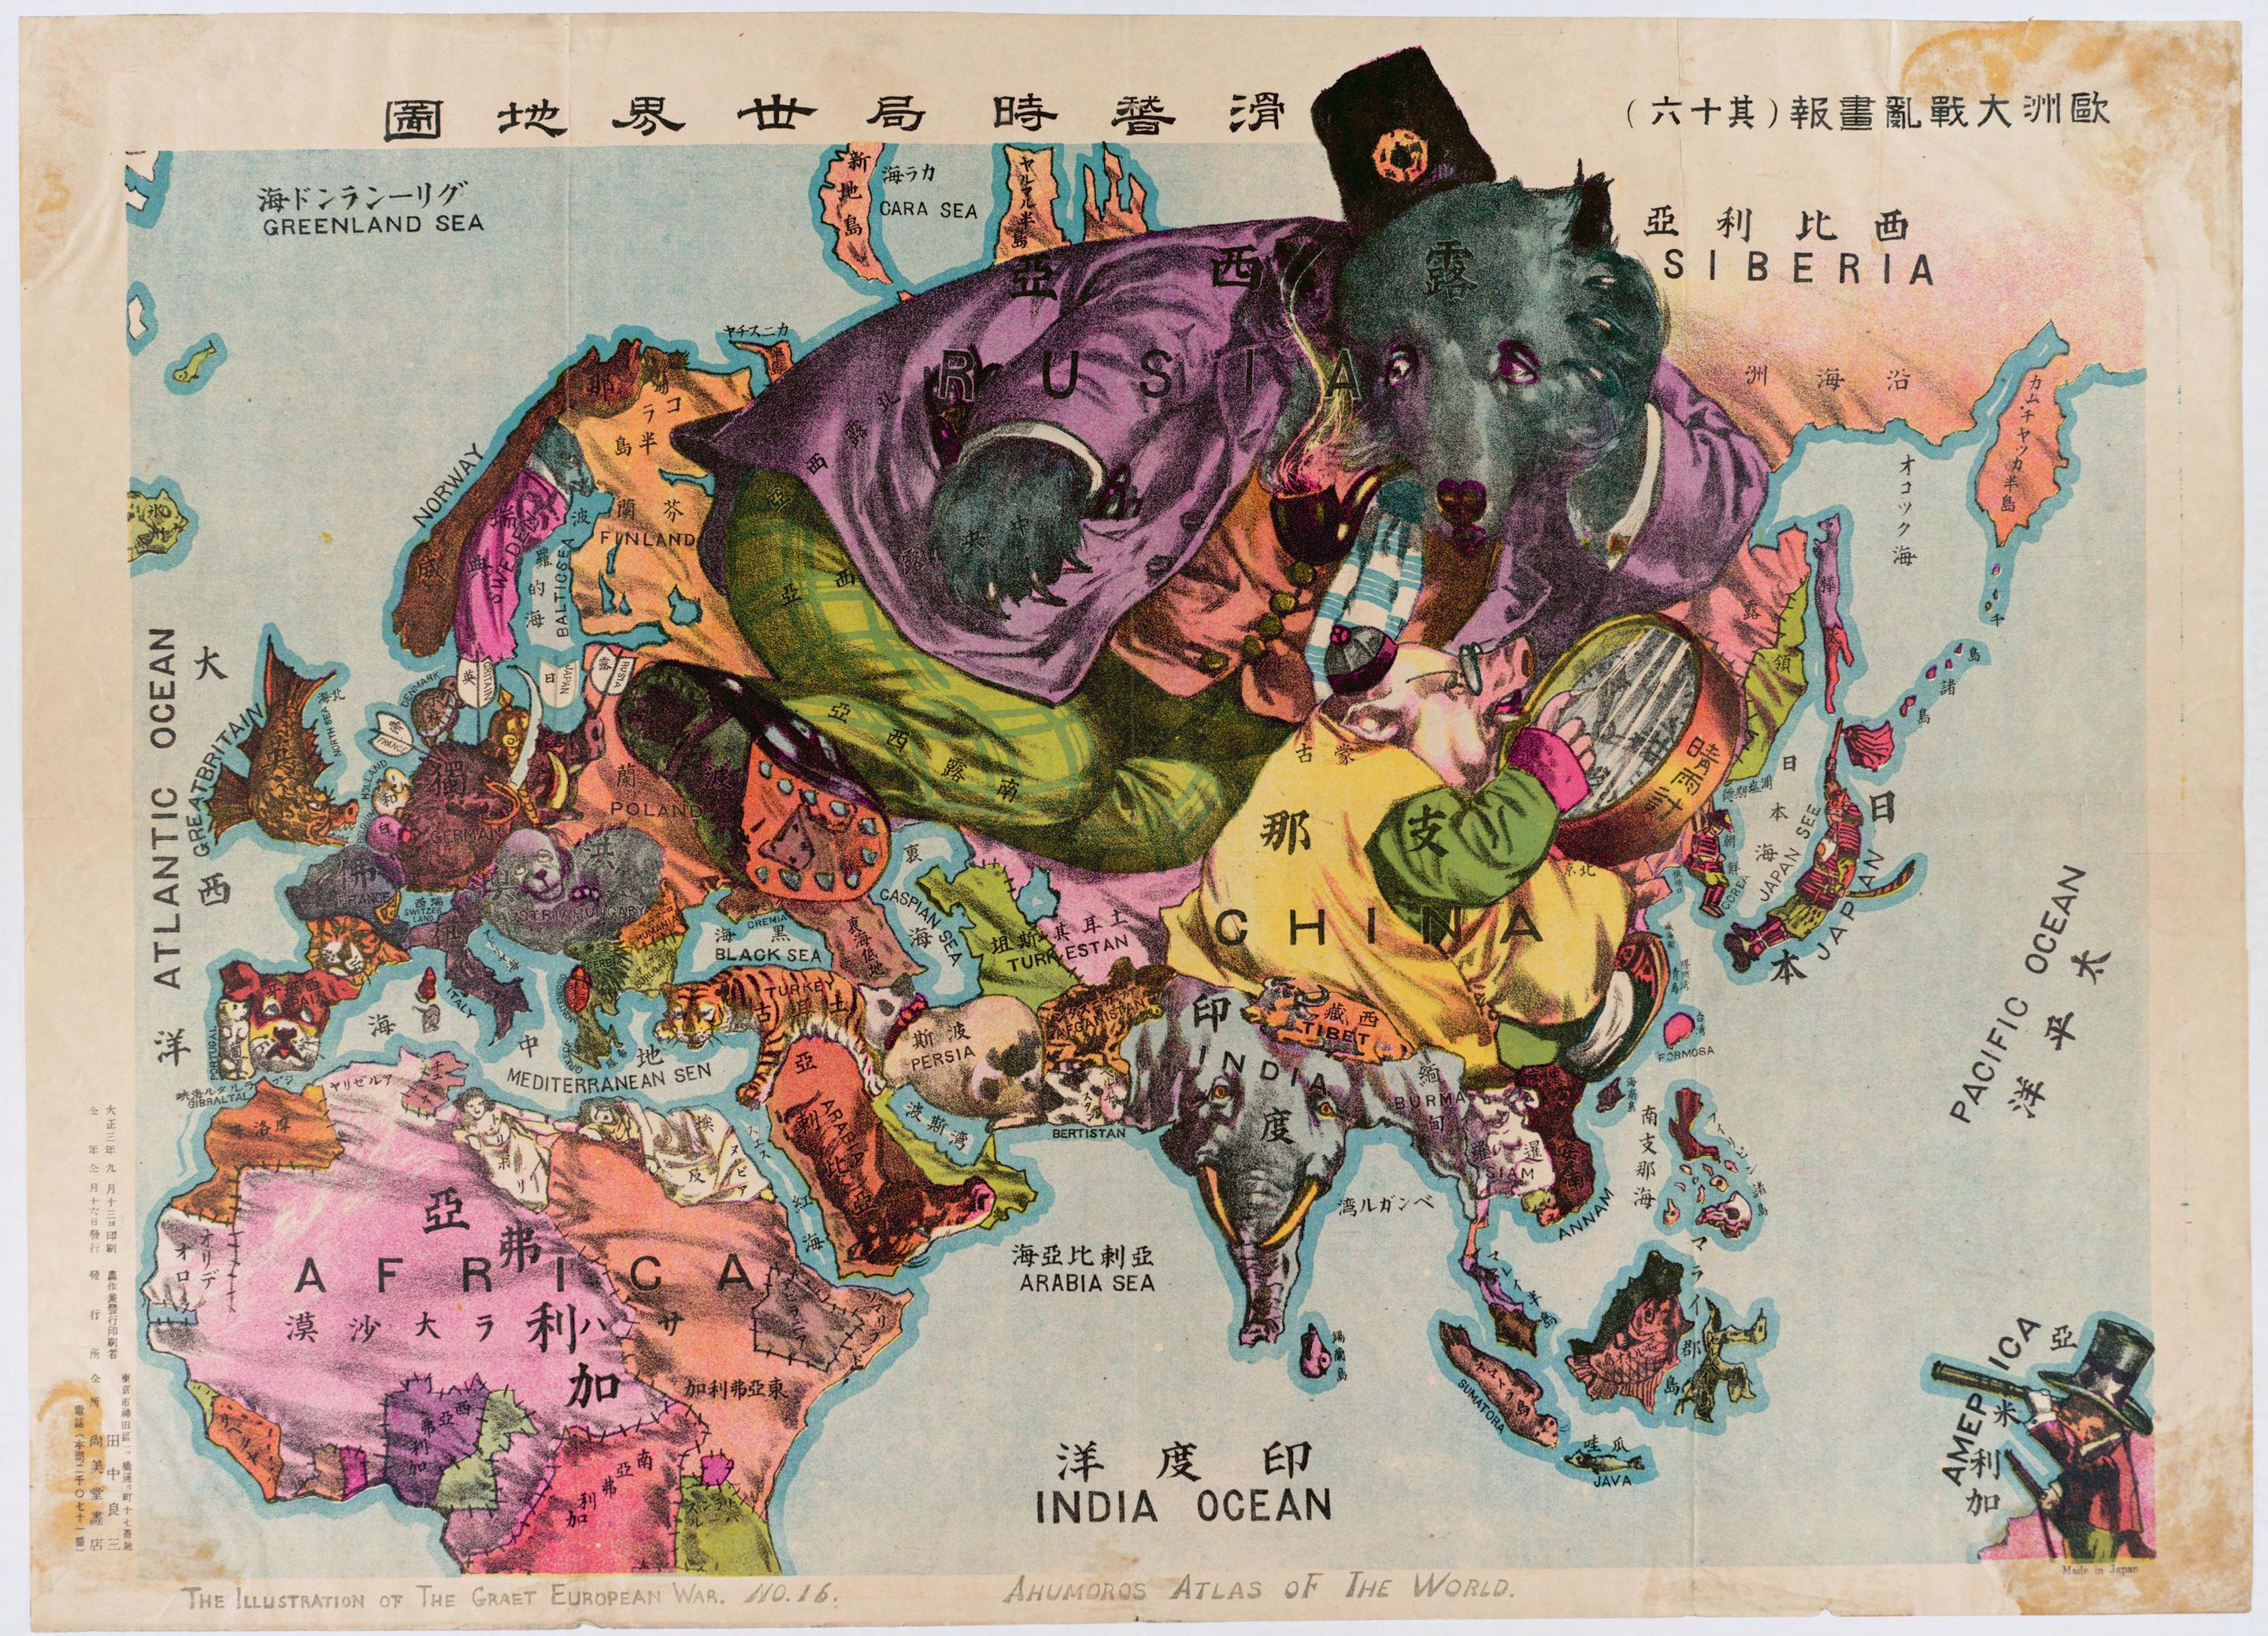 Japanese map from 1914 the illustration of the great european japanese map from 1914 the illustration of the great european war no1 a humorous atlas of the world gumiabroncs Gallery